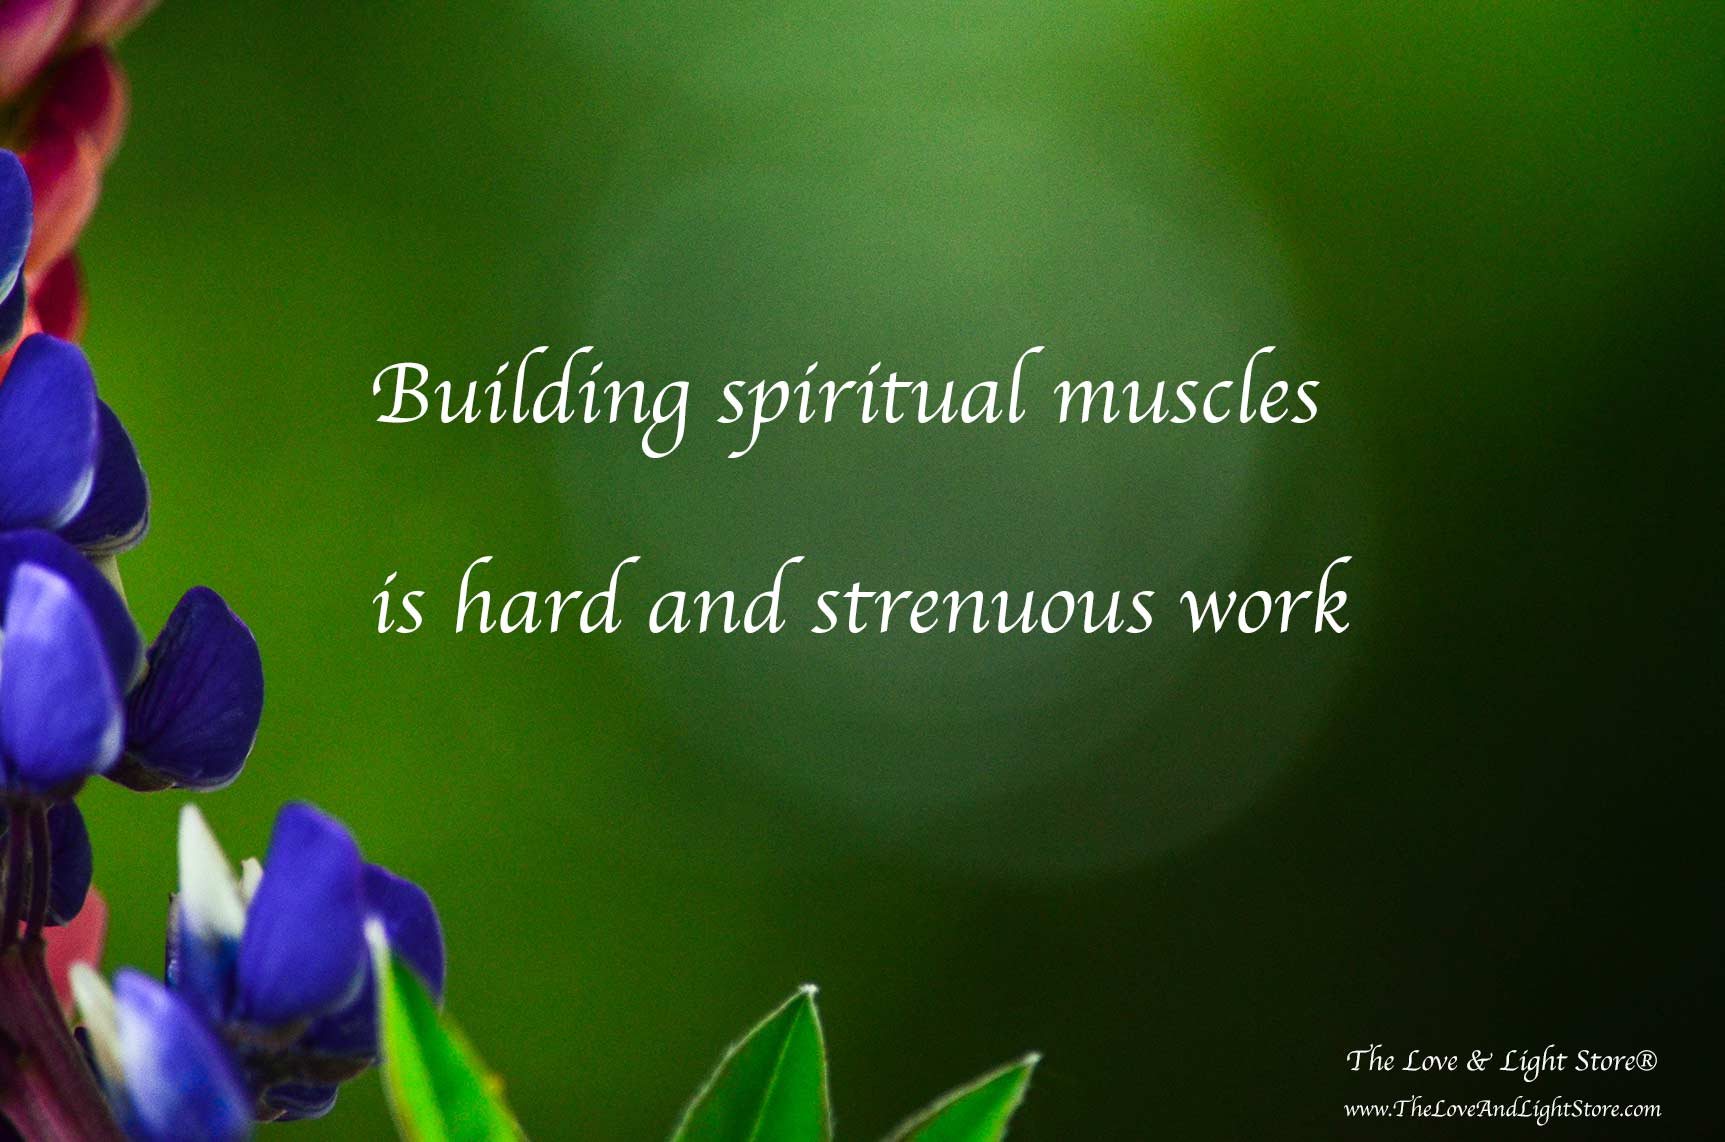 Building spiritual muscles is sometimes hard and strenuous work